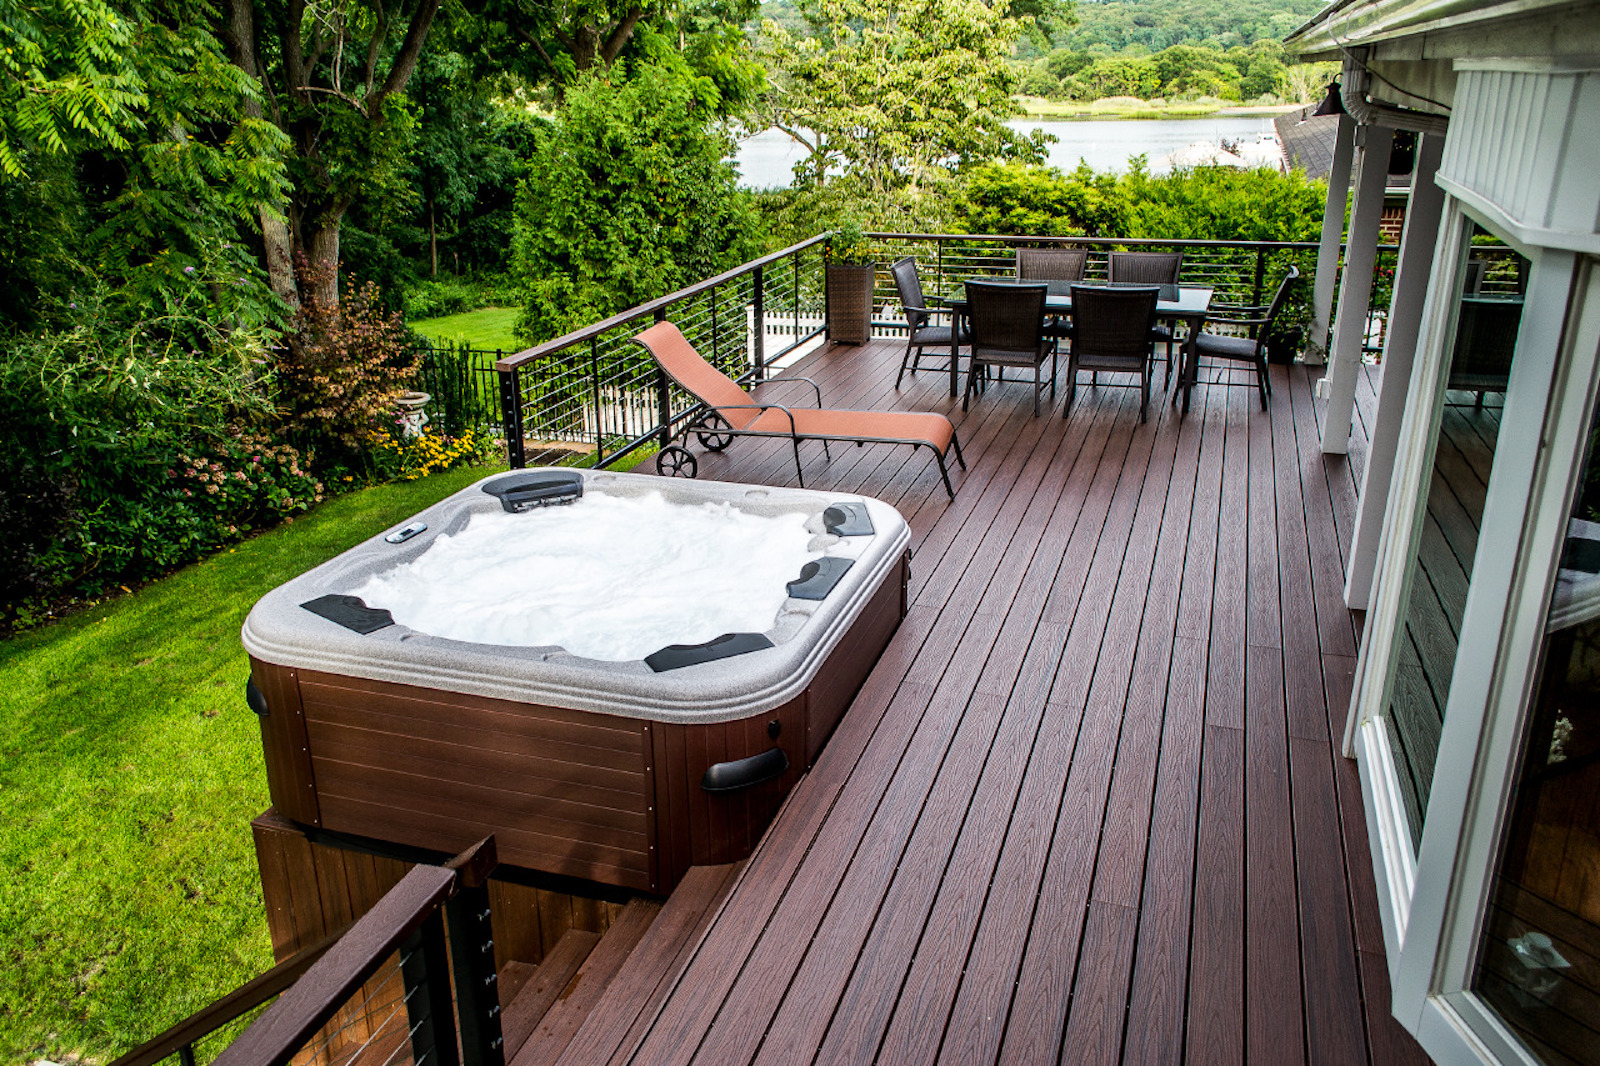 small resolution of wood deck with hot tub overlooking lush green area